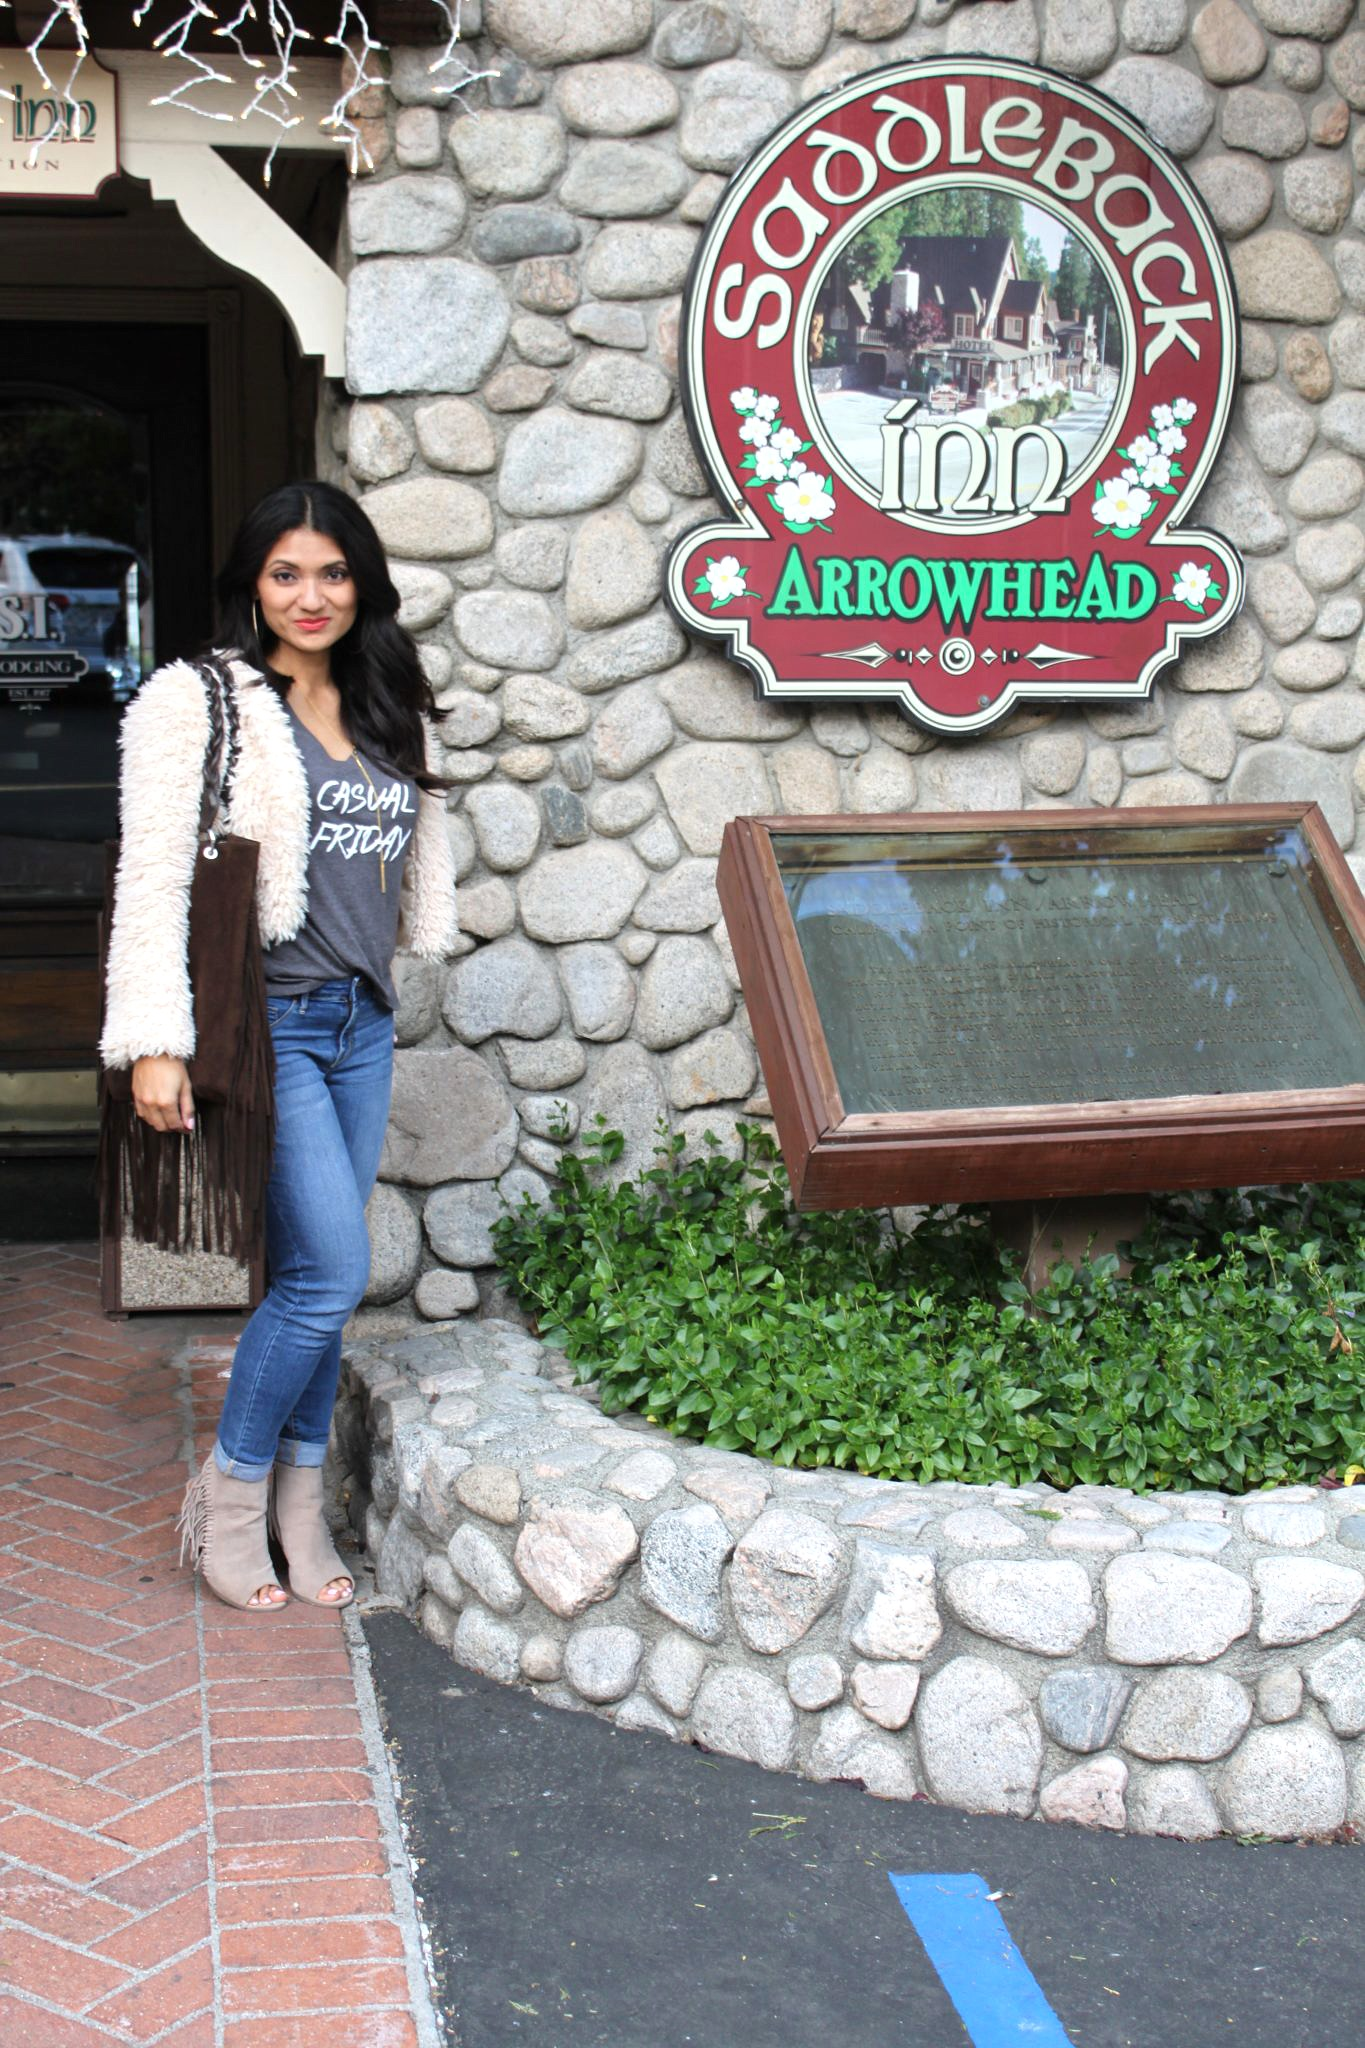 debbie-savage-lake-arrowhead-saddleback-inn-14